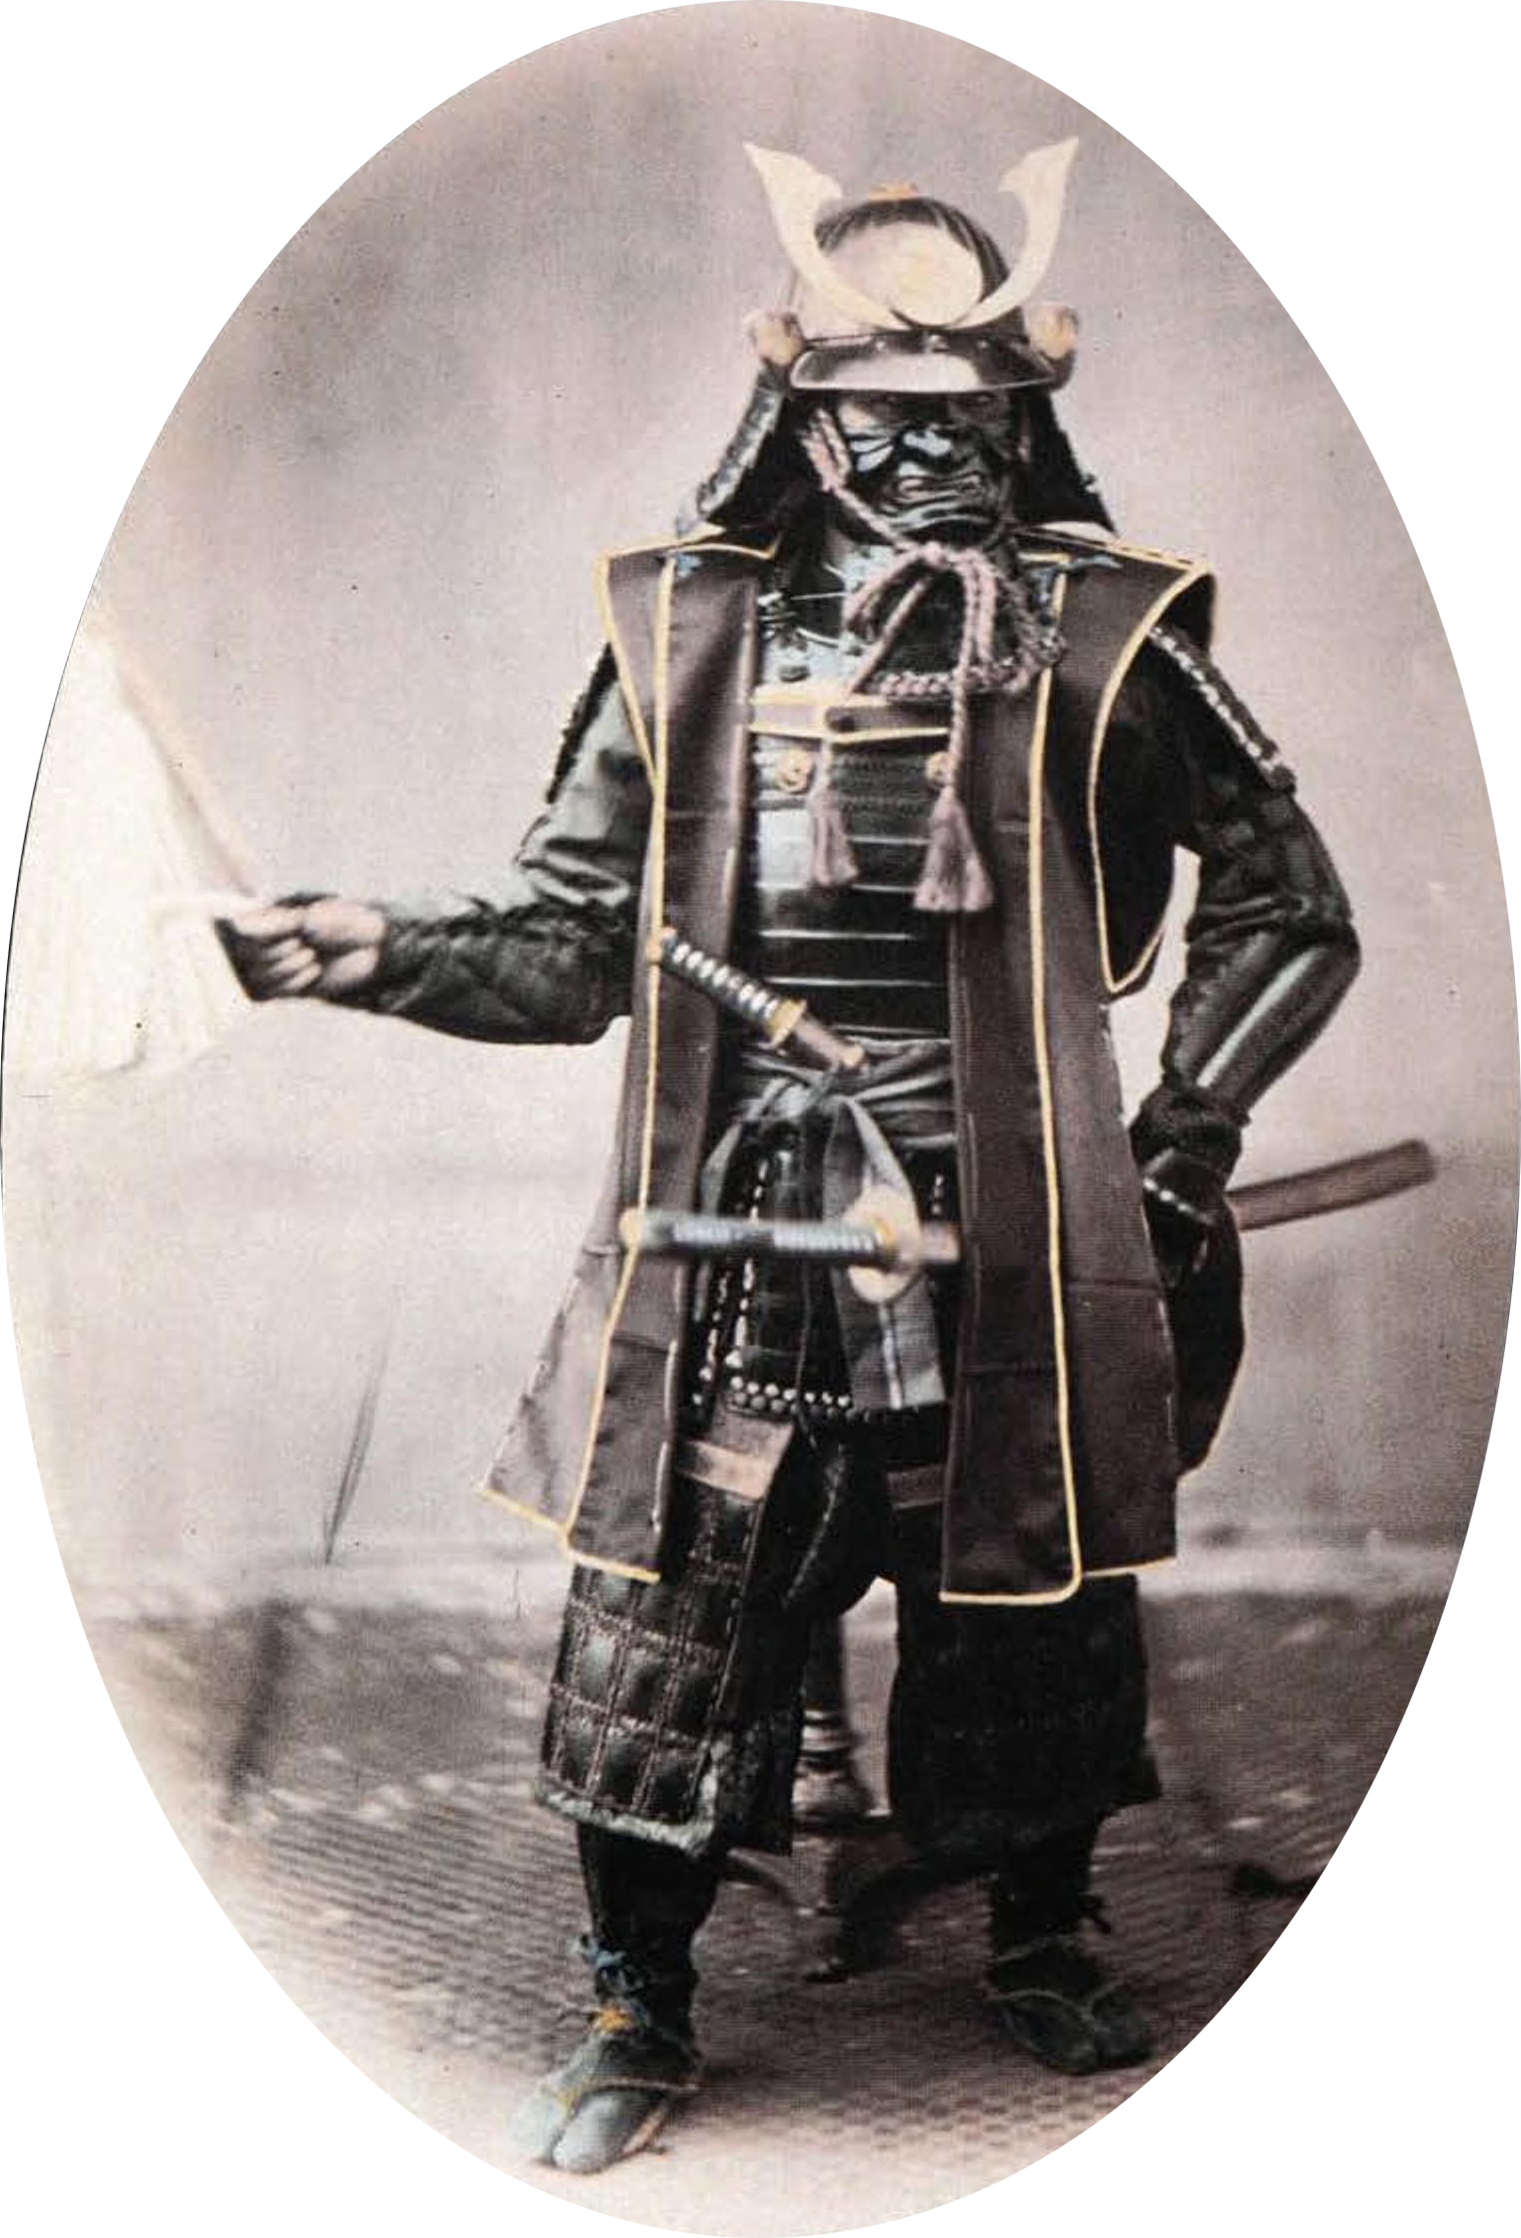 https://i0.wp.com/upload.wikimedia.org/wikipedia/commons/0/0e/Samurai.jpg